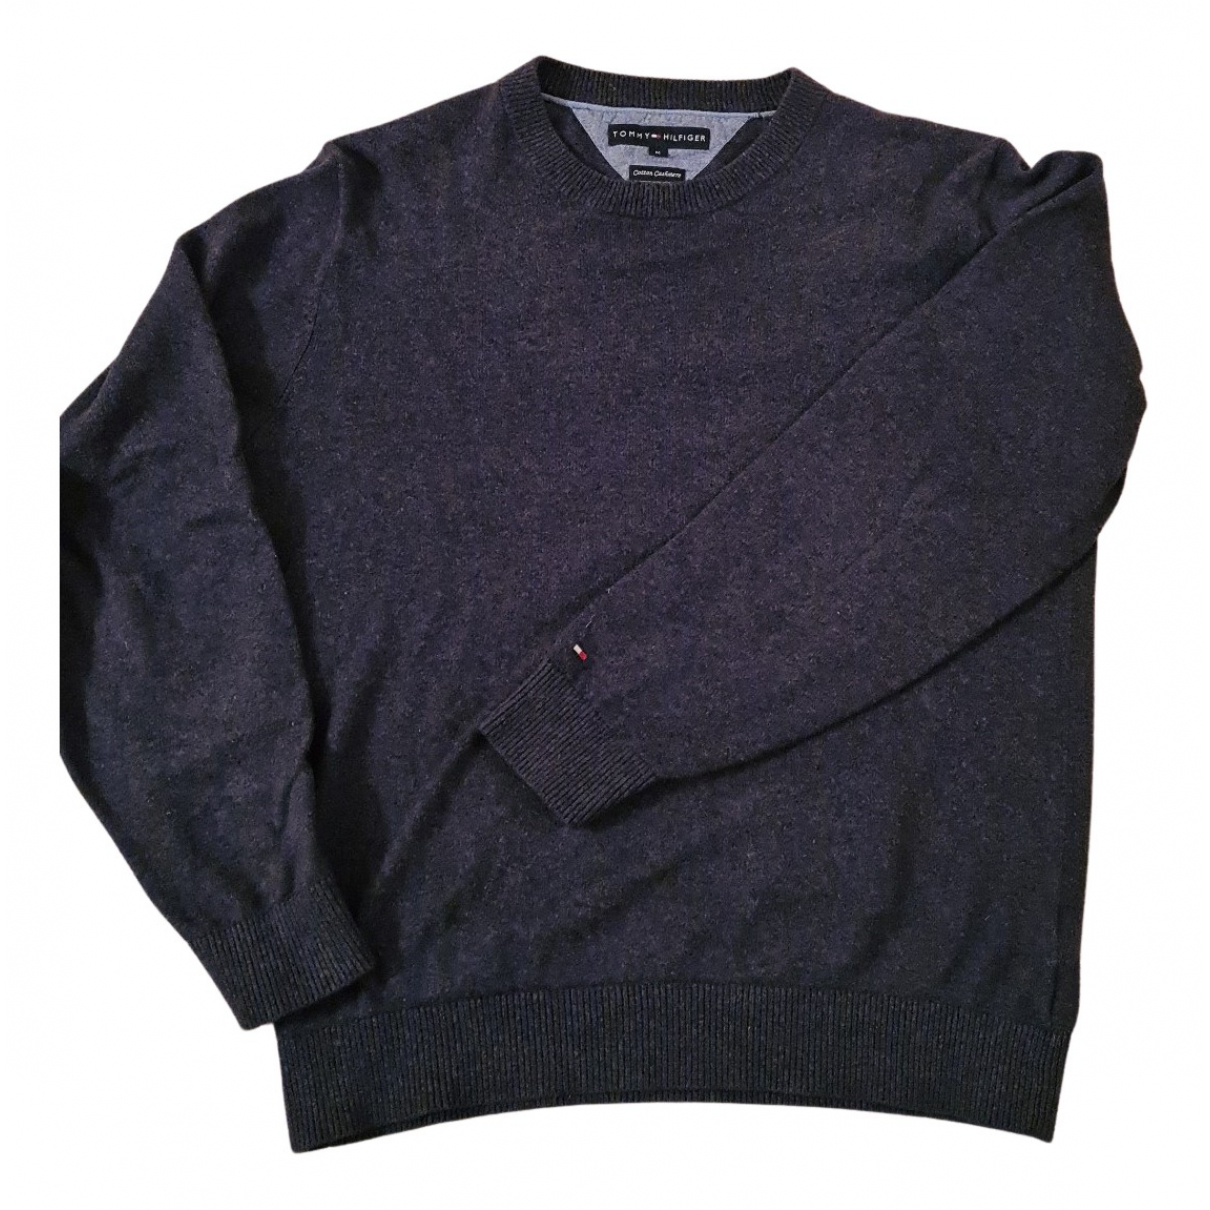 Tommy Hilfiger N Blue Cashmere Knitwear & Sweatshirts for Men M International